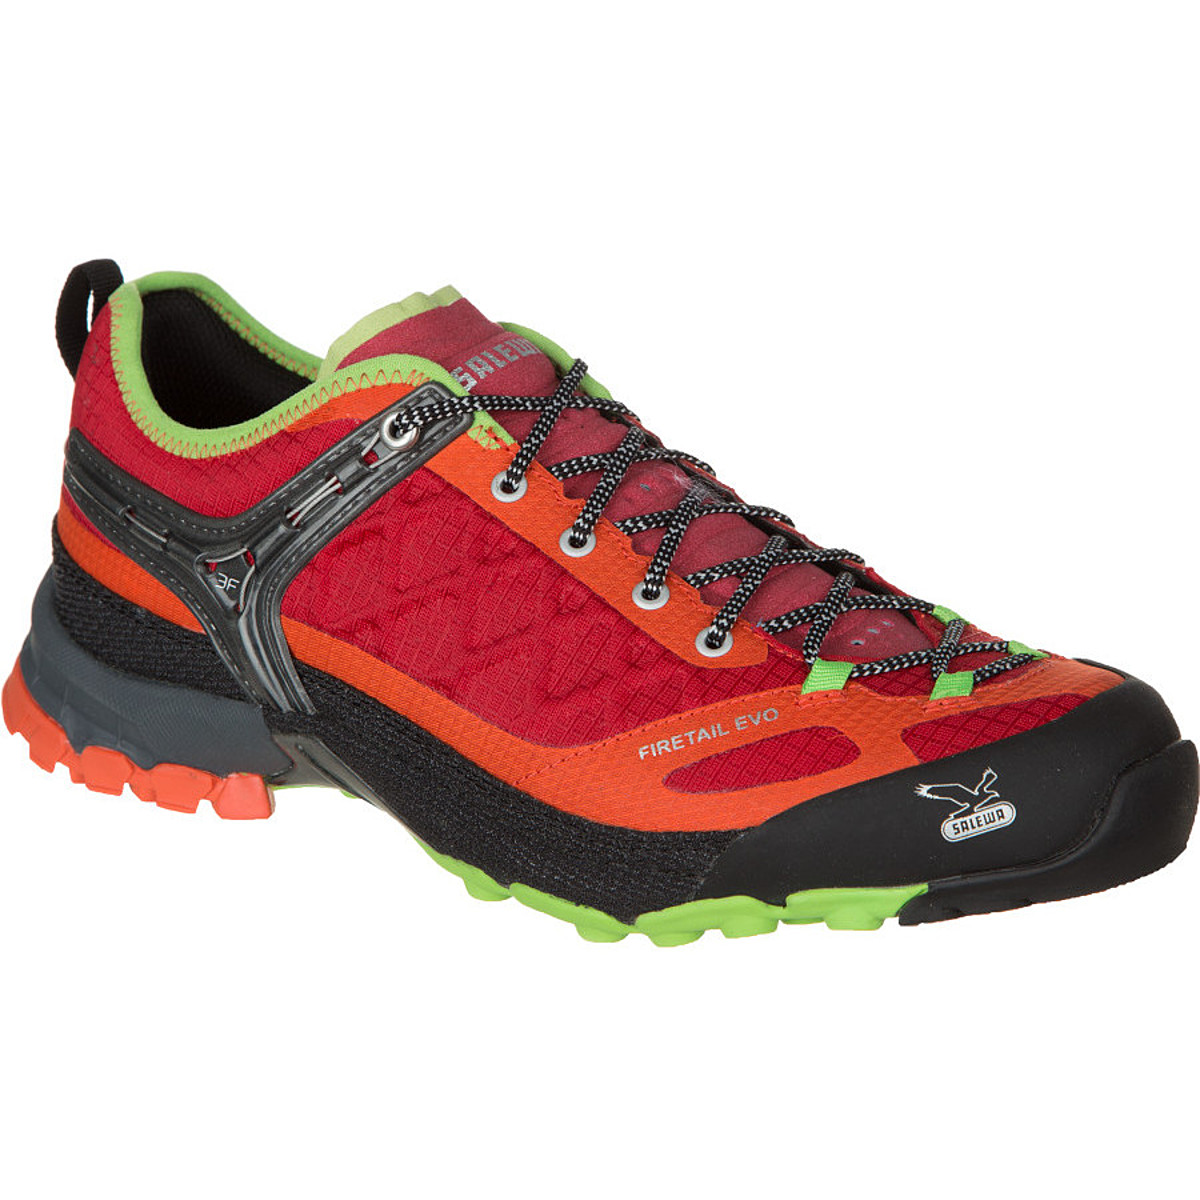 Salewa Firetail EVO